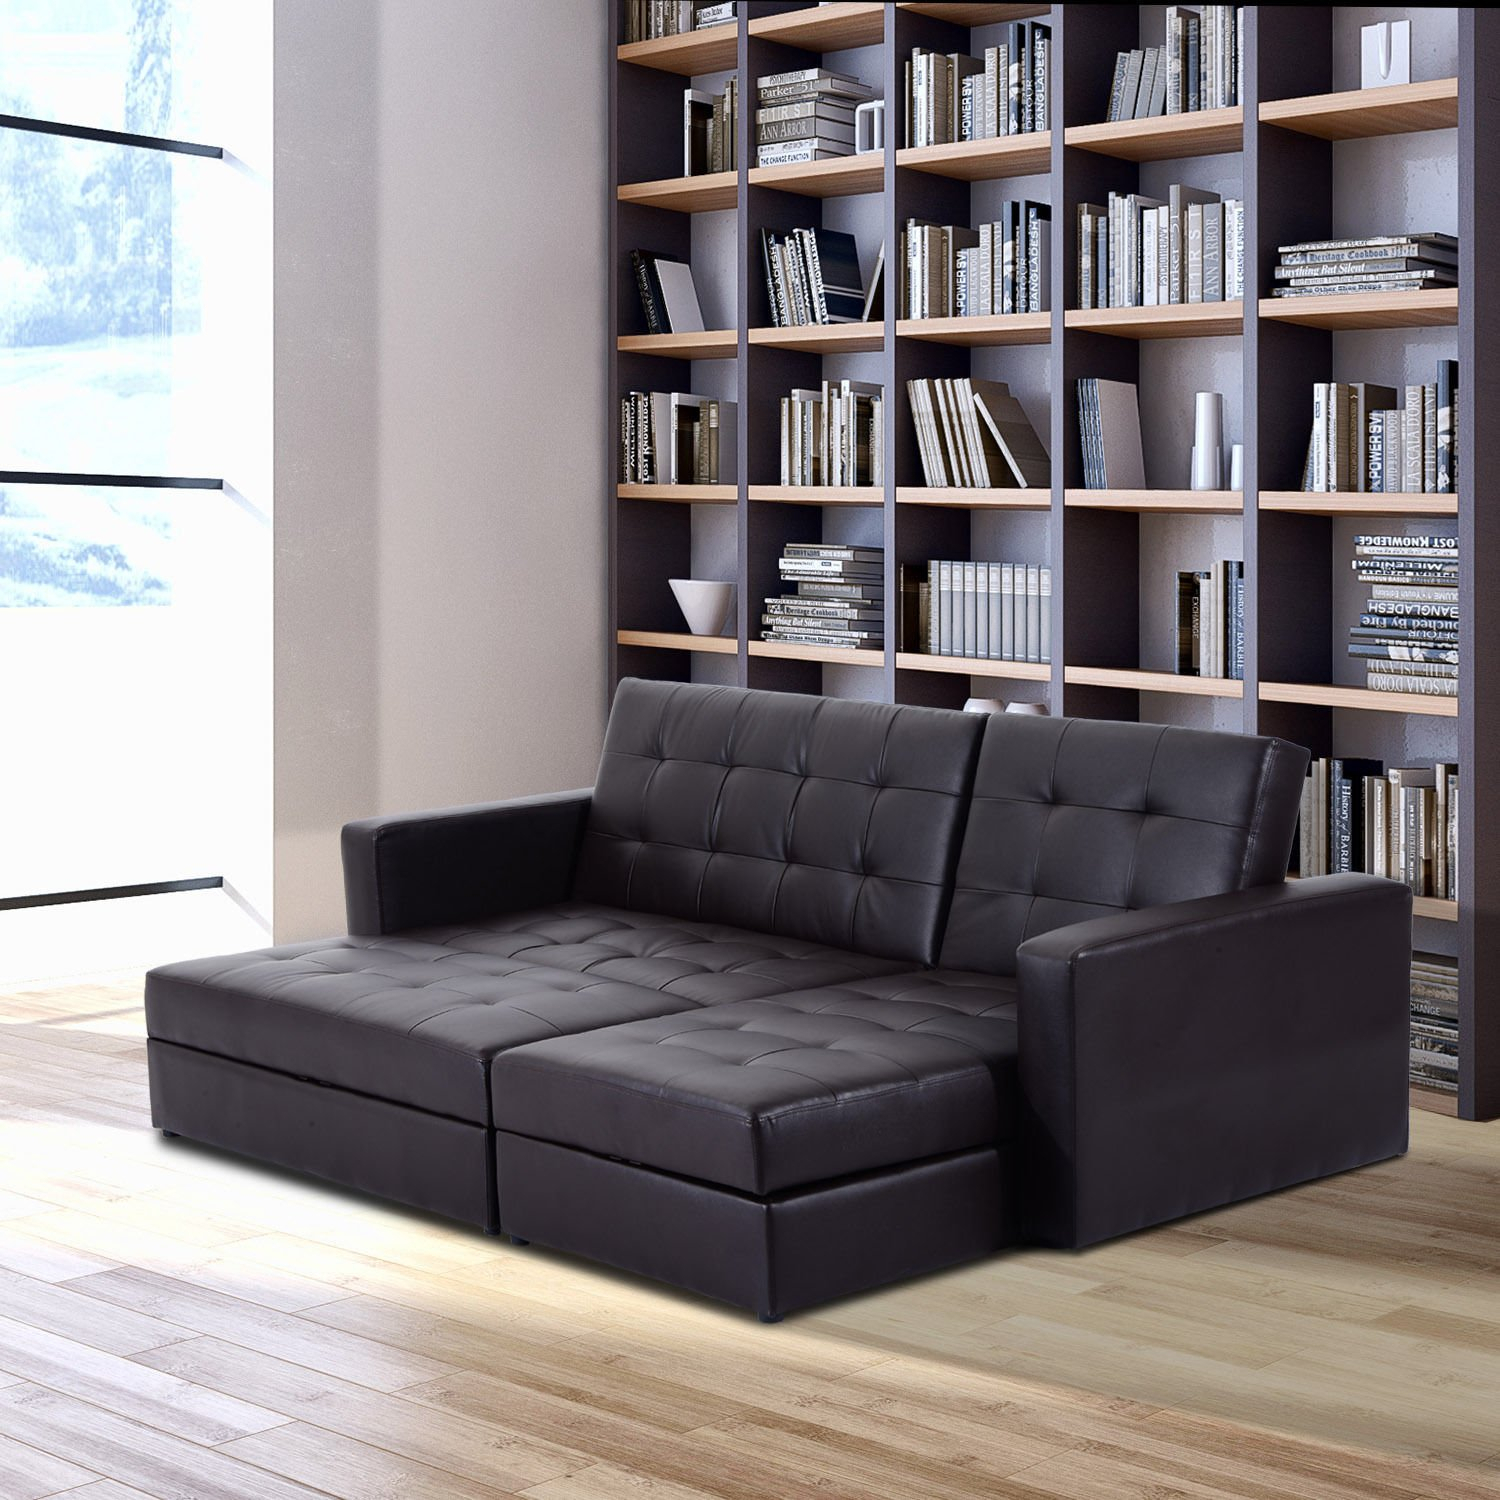 Storage+Sleeper+Couch+Sofa+Bed – Simply Style For Prato Storage Sectional Futon Sofas (View 11 of 15)